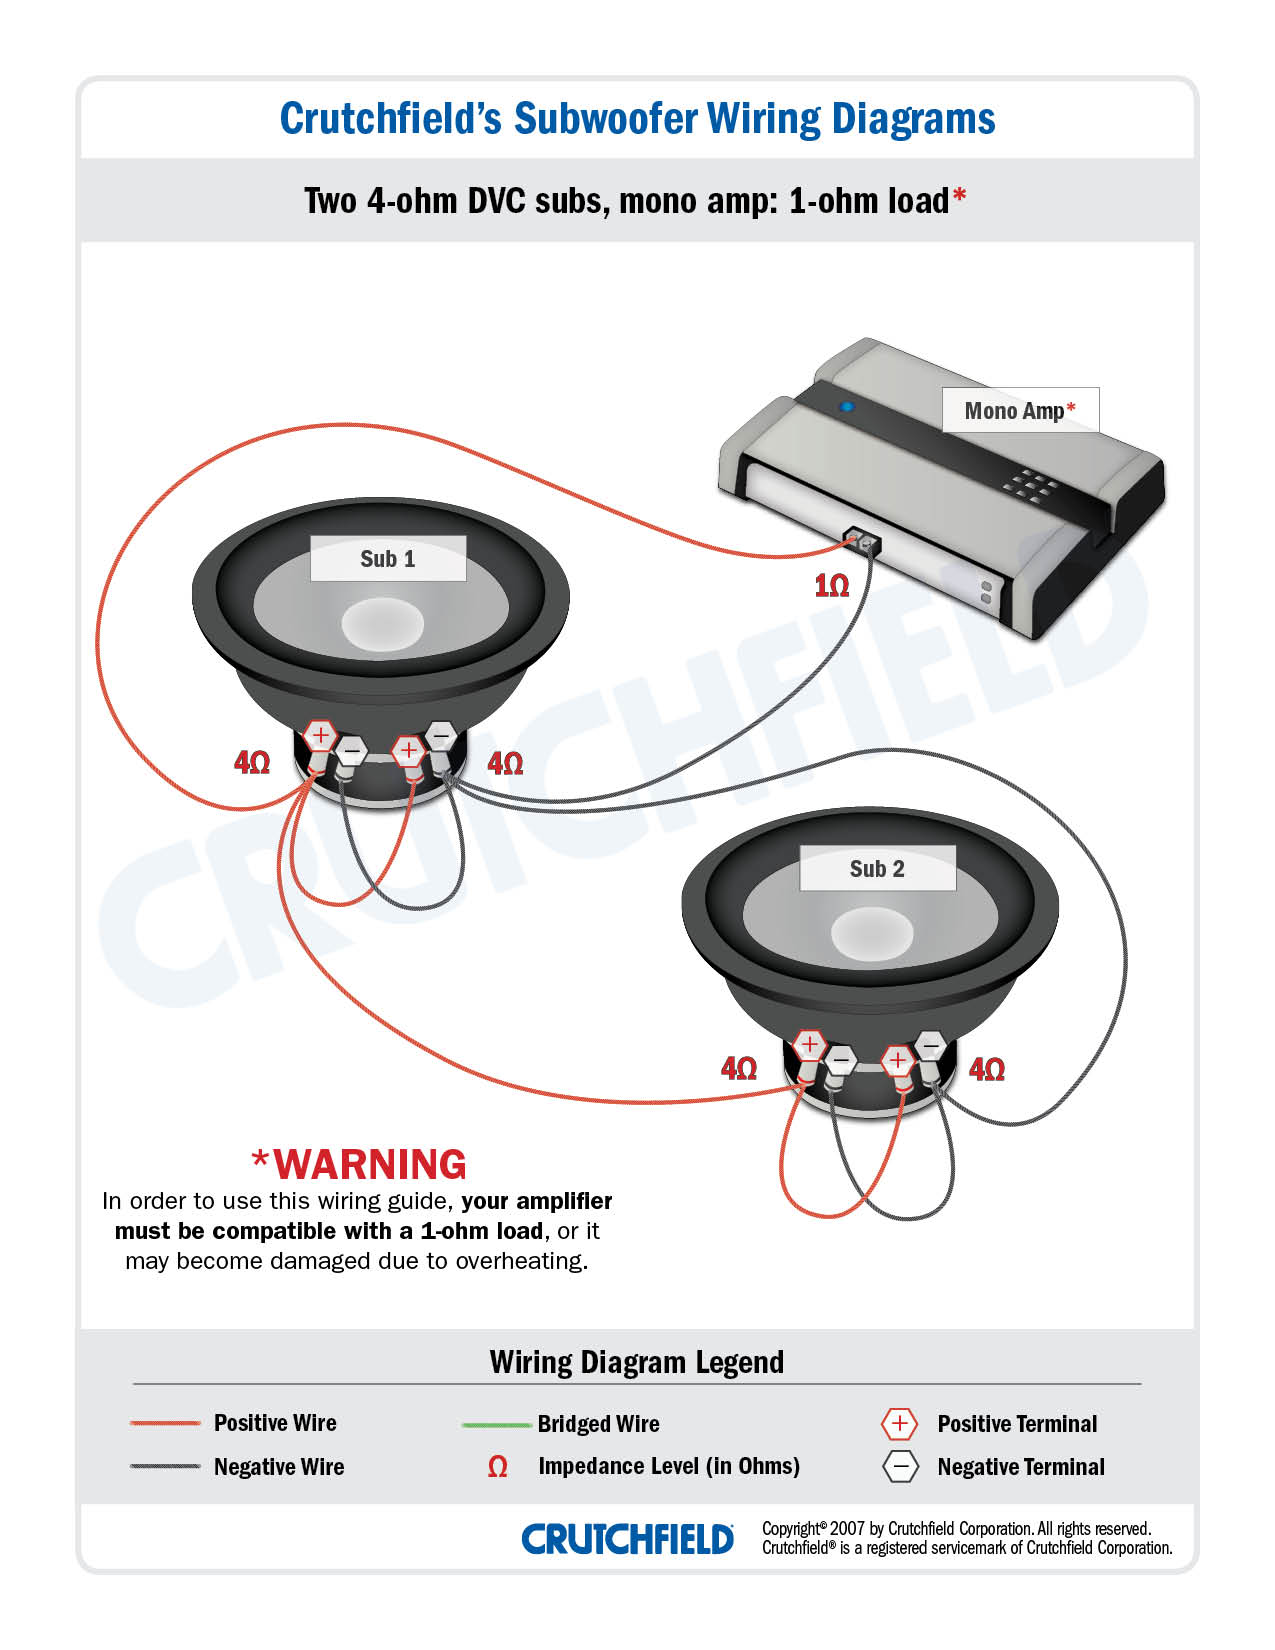 Strange Subwoofer Wiring Diagrams How To Wire Your Subs Wiring Digital Resources Bemuashebarightsorg